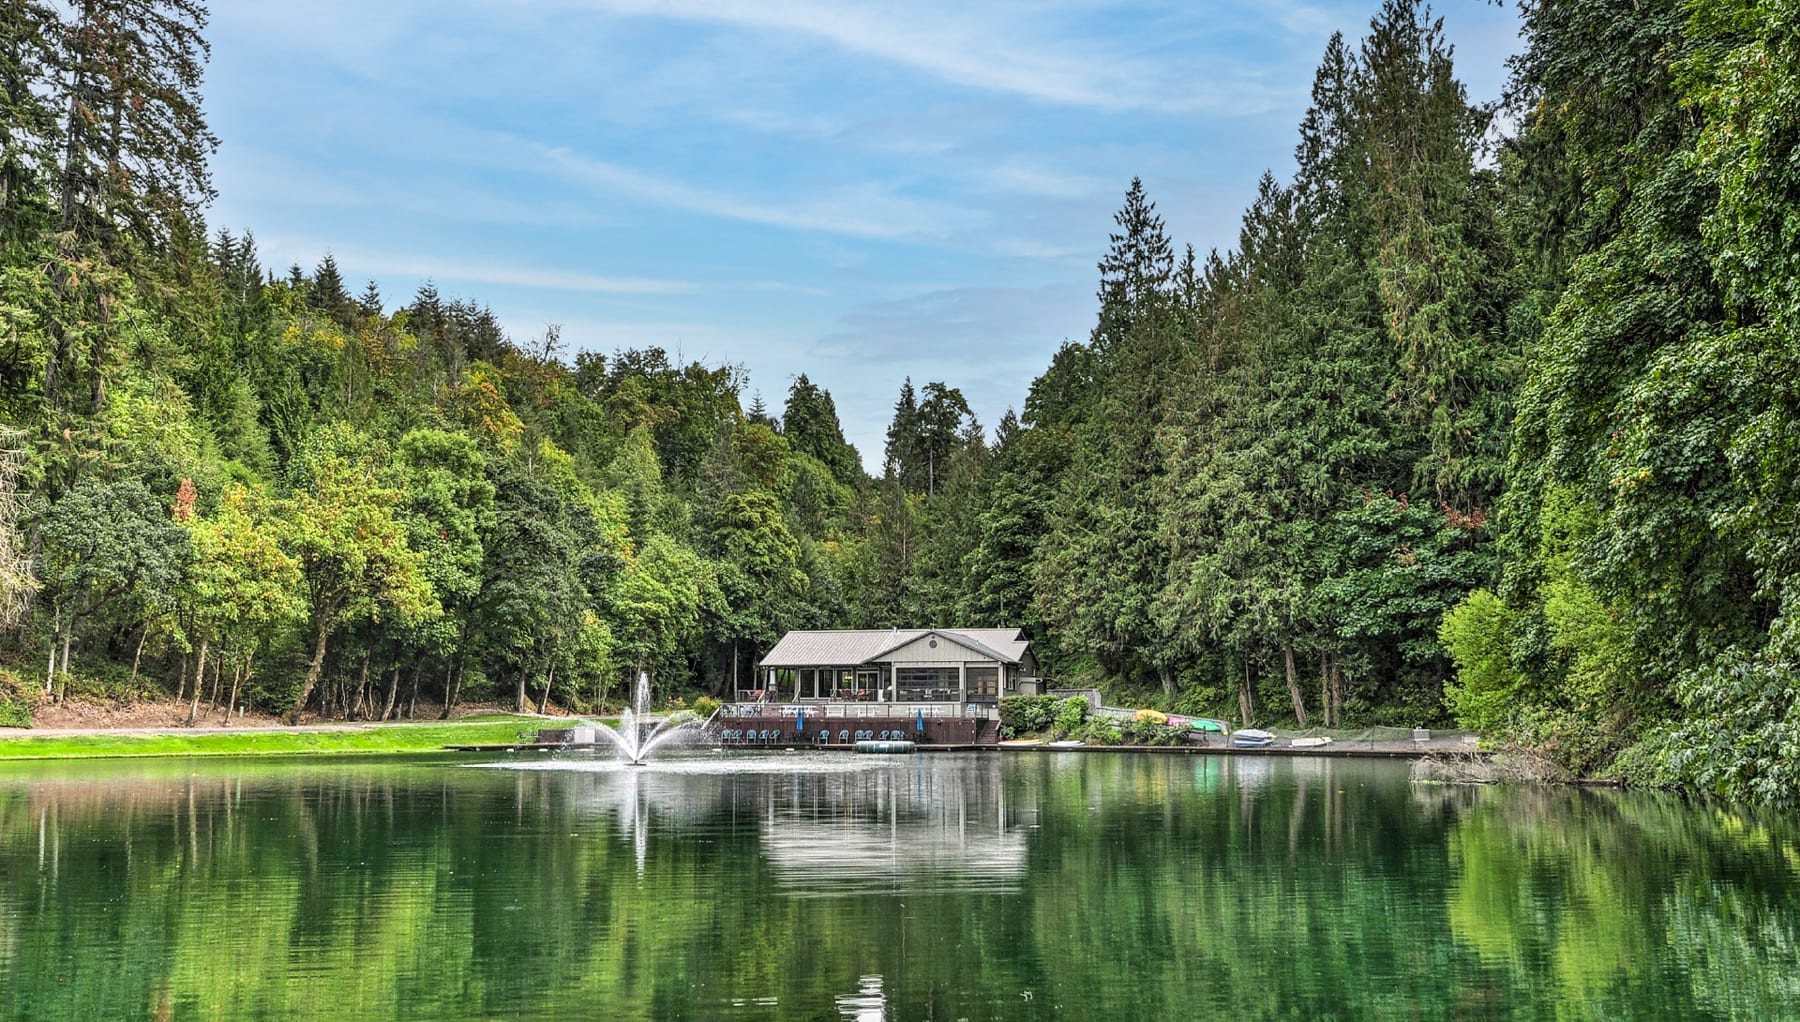 The 10 Best Places to Buy a Lake House in 2022